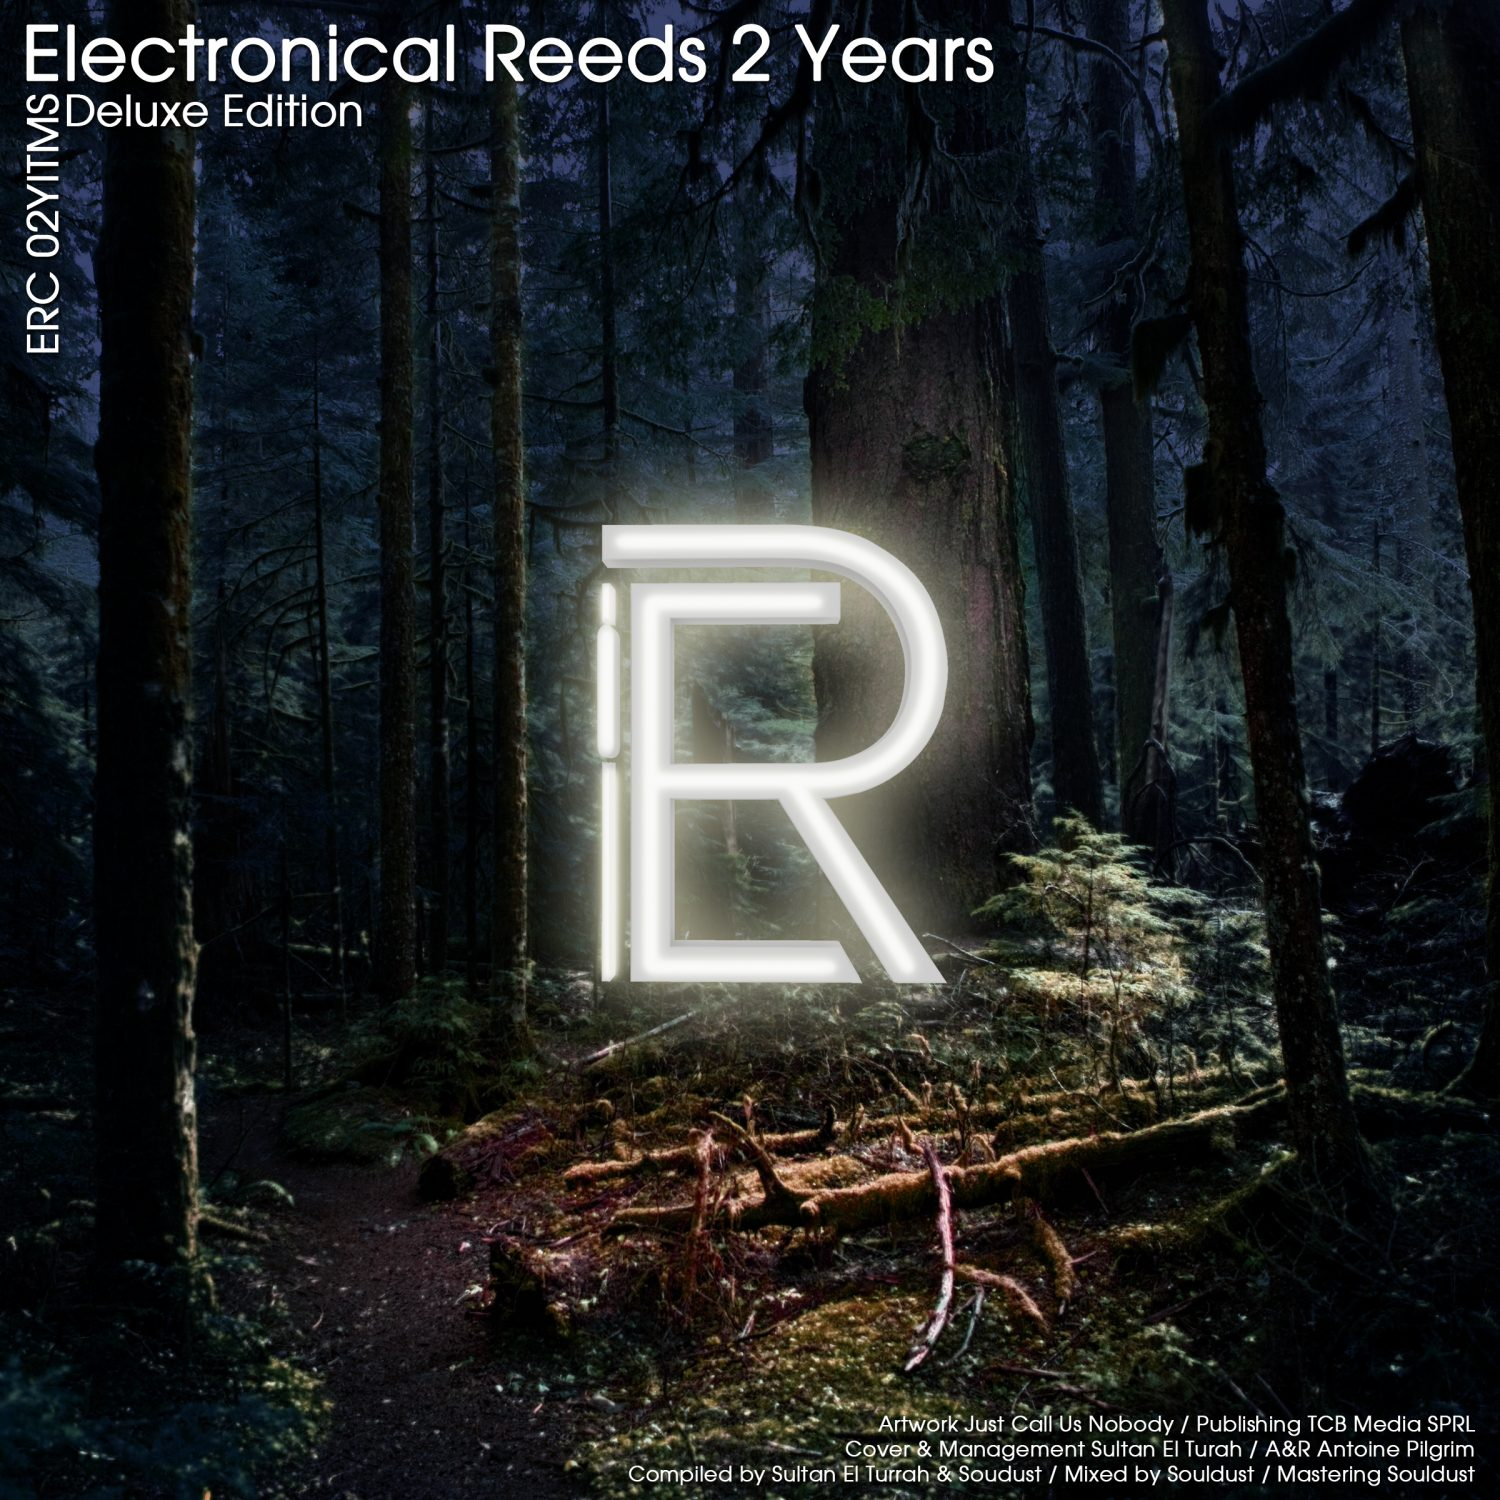 ERC02Y - Various Artists - Electronical Reeds 2 Years